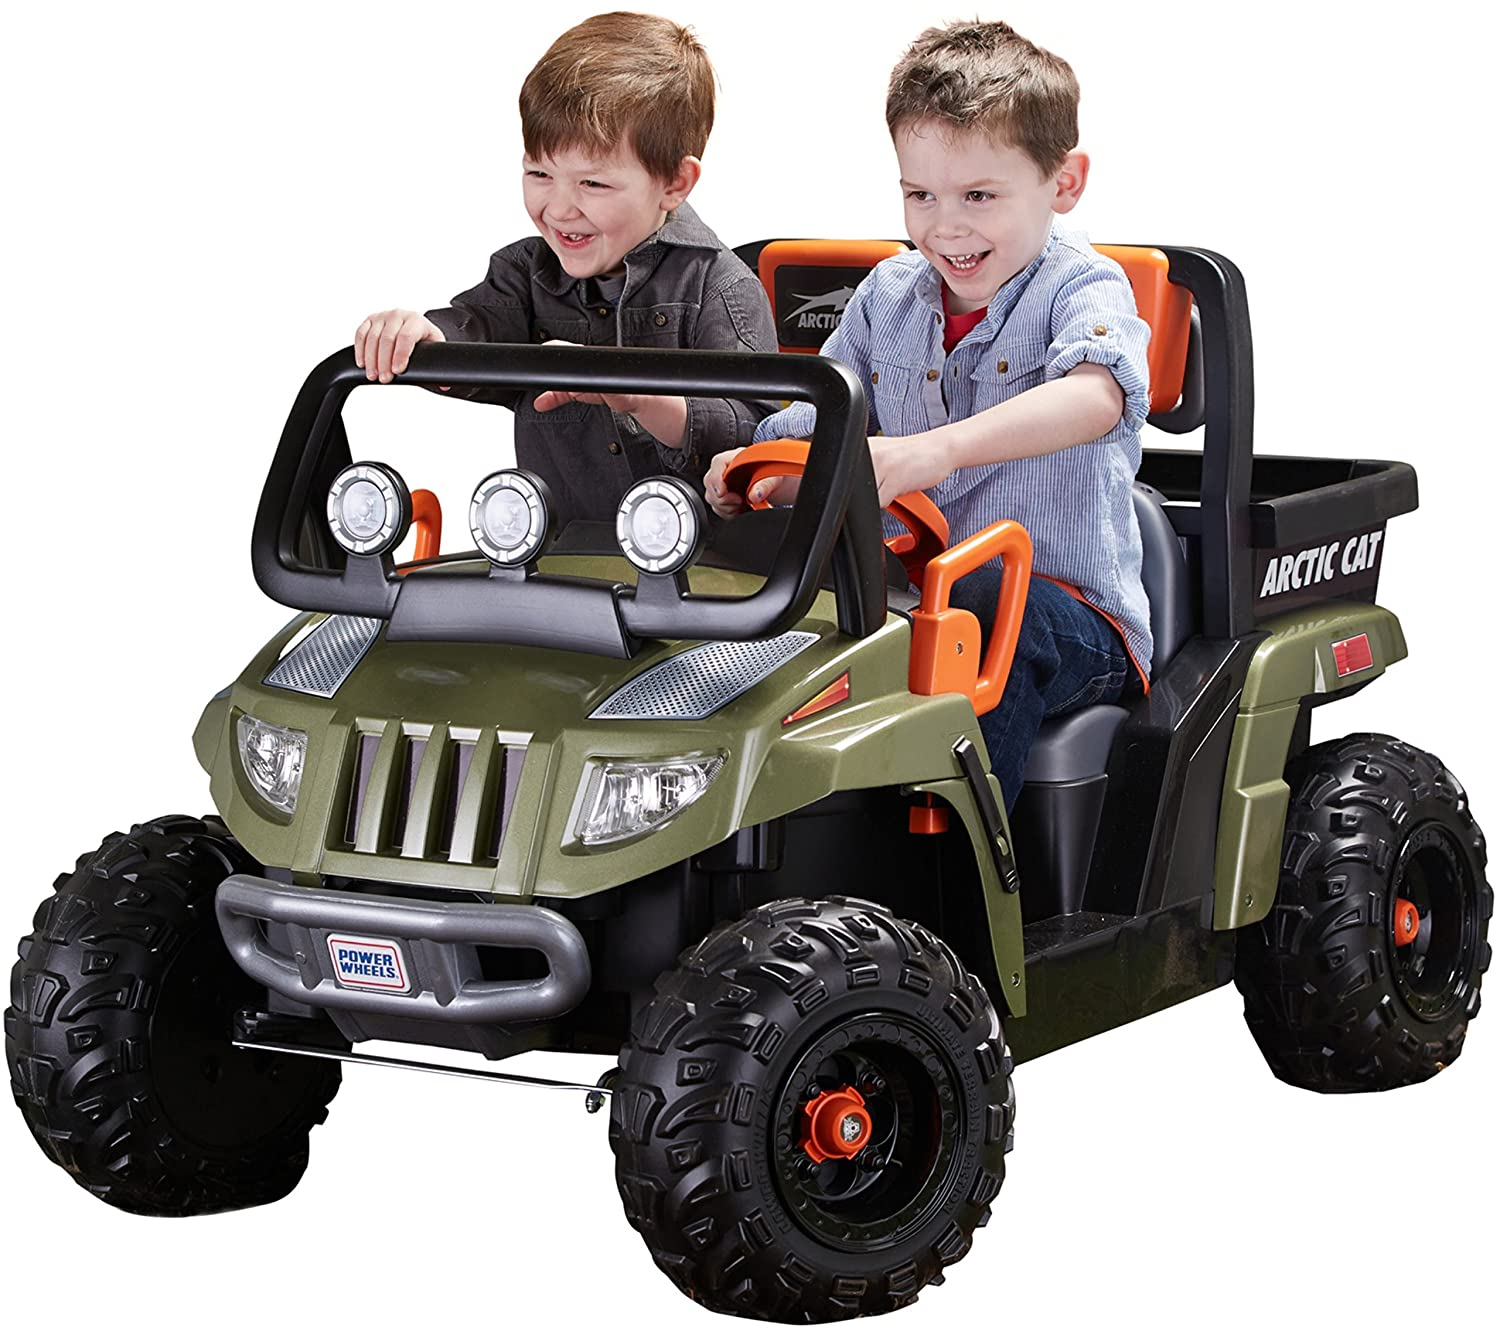 The Best Power Wheels Brand and Model Reviews 2